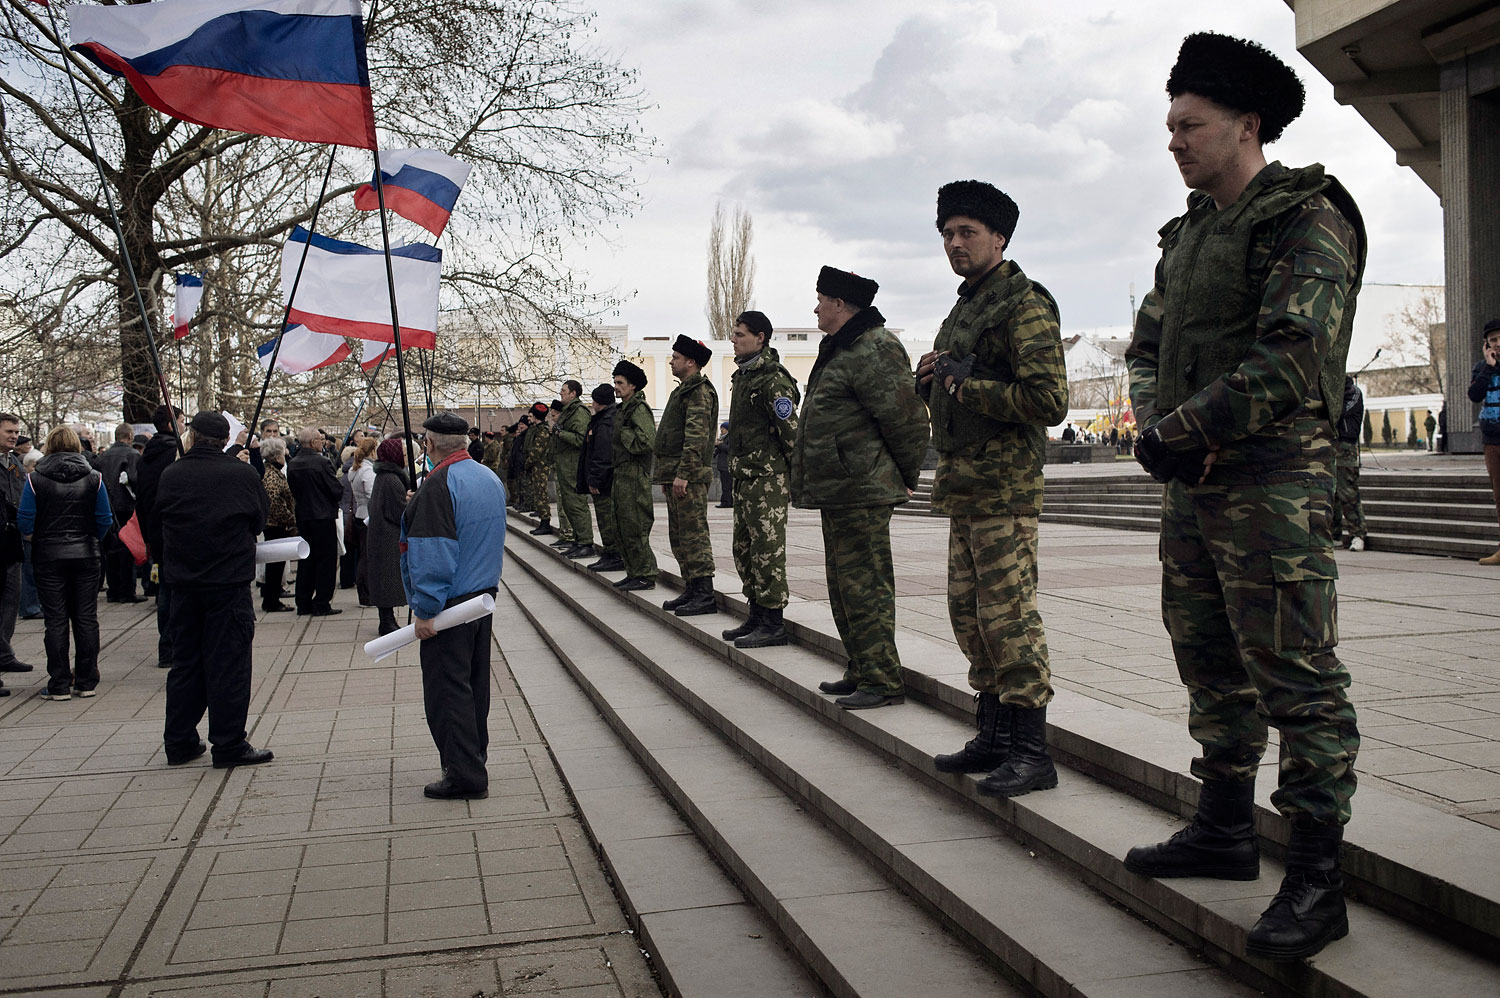 Cossacks guard the local parliament building in Crimea's capital Simferopol on March 6, 2014